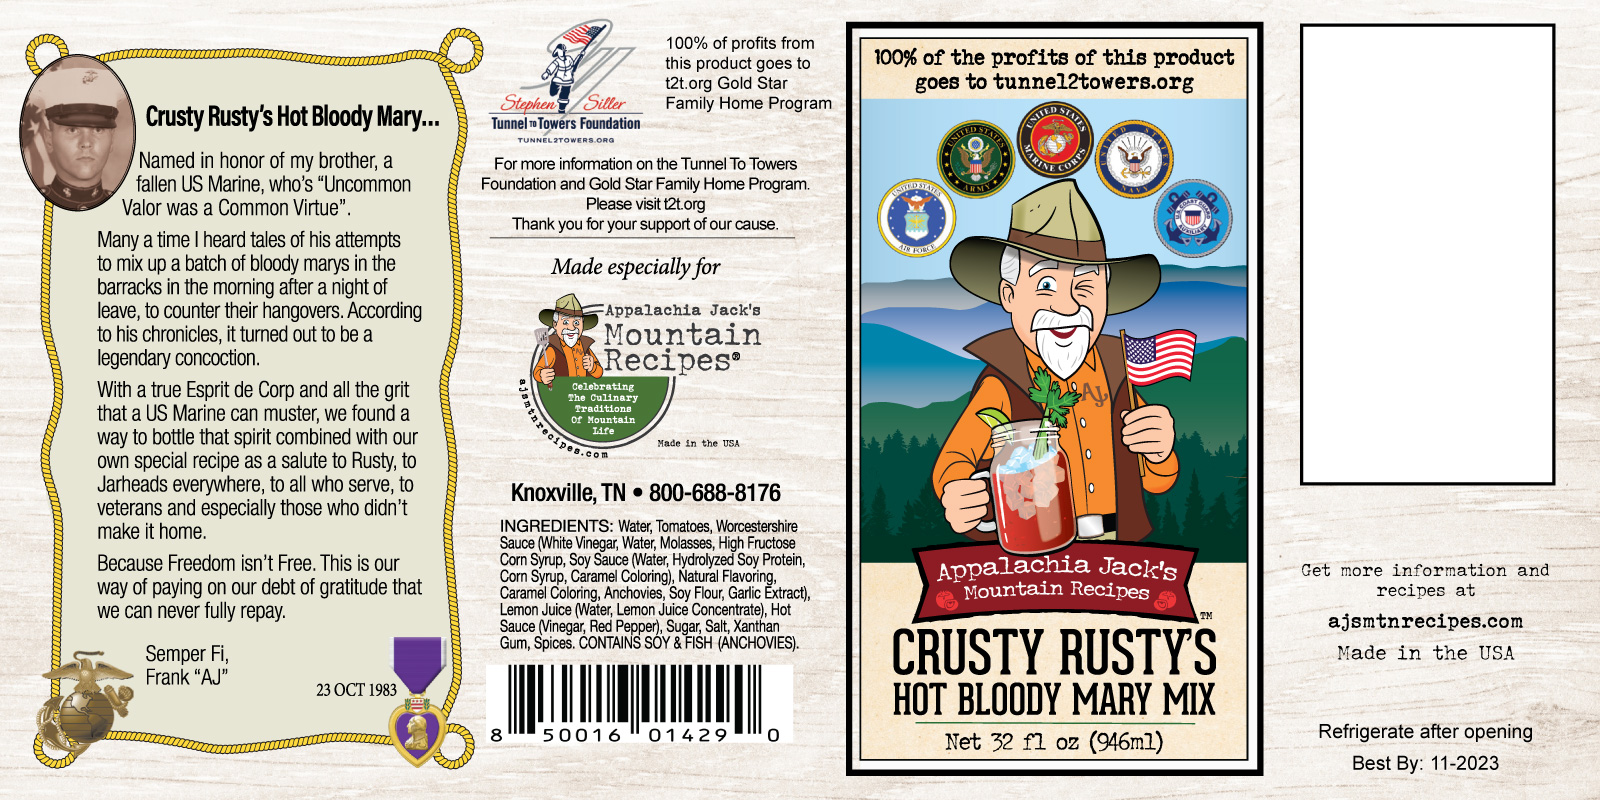 Crusty Rustys Hot Bloody Mary Mix - Label